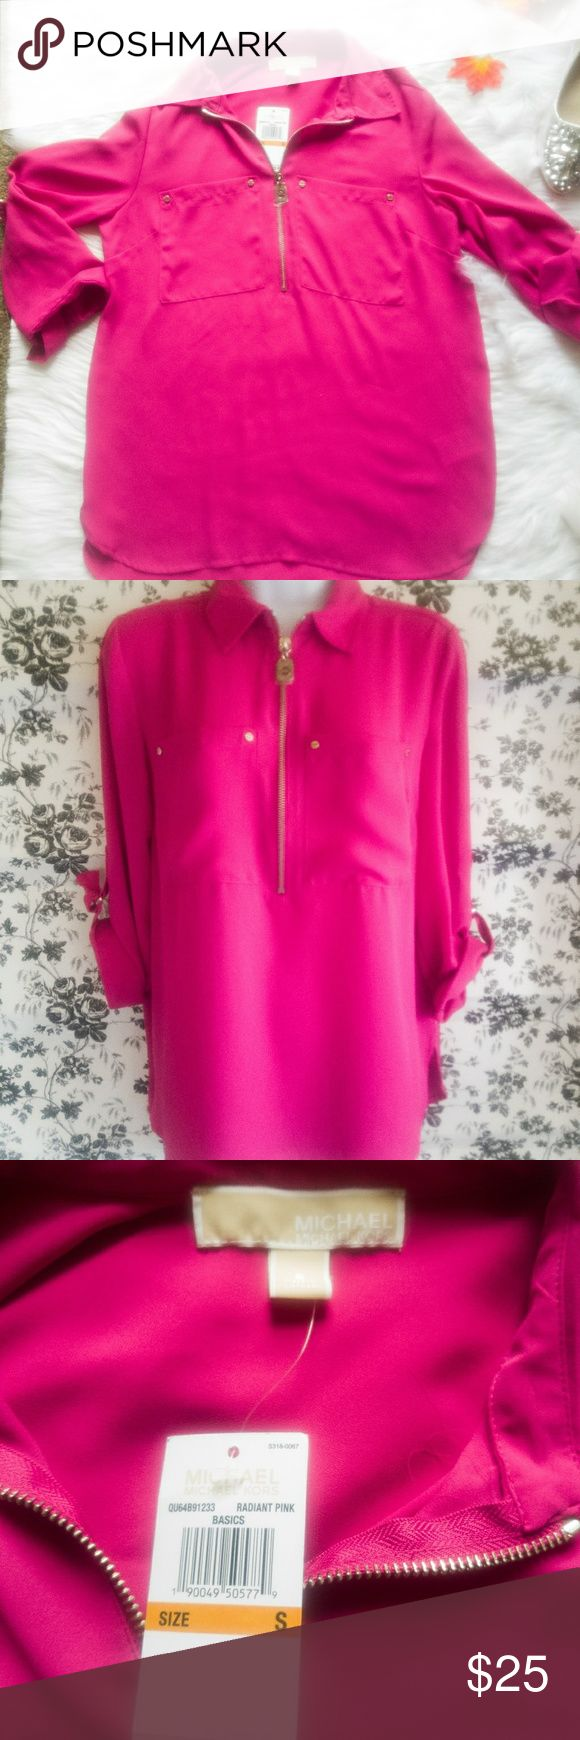 🔥🔥MICHAEL KORS PINK RADIANT SLOUCHY TOP🔥🔥 MICHAEL KORS PINK RADIANT SLOUCHY TOP. BRAND NEW WITH TAGS. RETAILS FOR $110.00. SLOUCHY FLOWY RADIANT PINK COLOR.  HAS SOME GOLD DETAILING AND MK LOGO ON THE ZIPPER AND THE SLEEVES. SIZE SMALL Michael Kors Tops